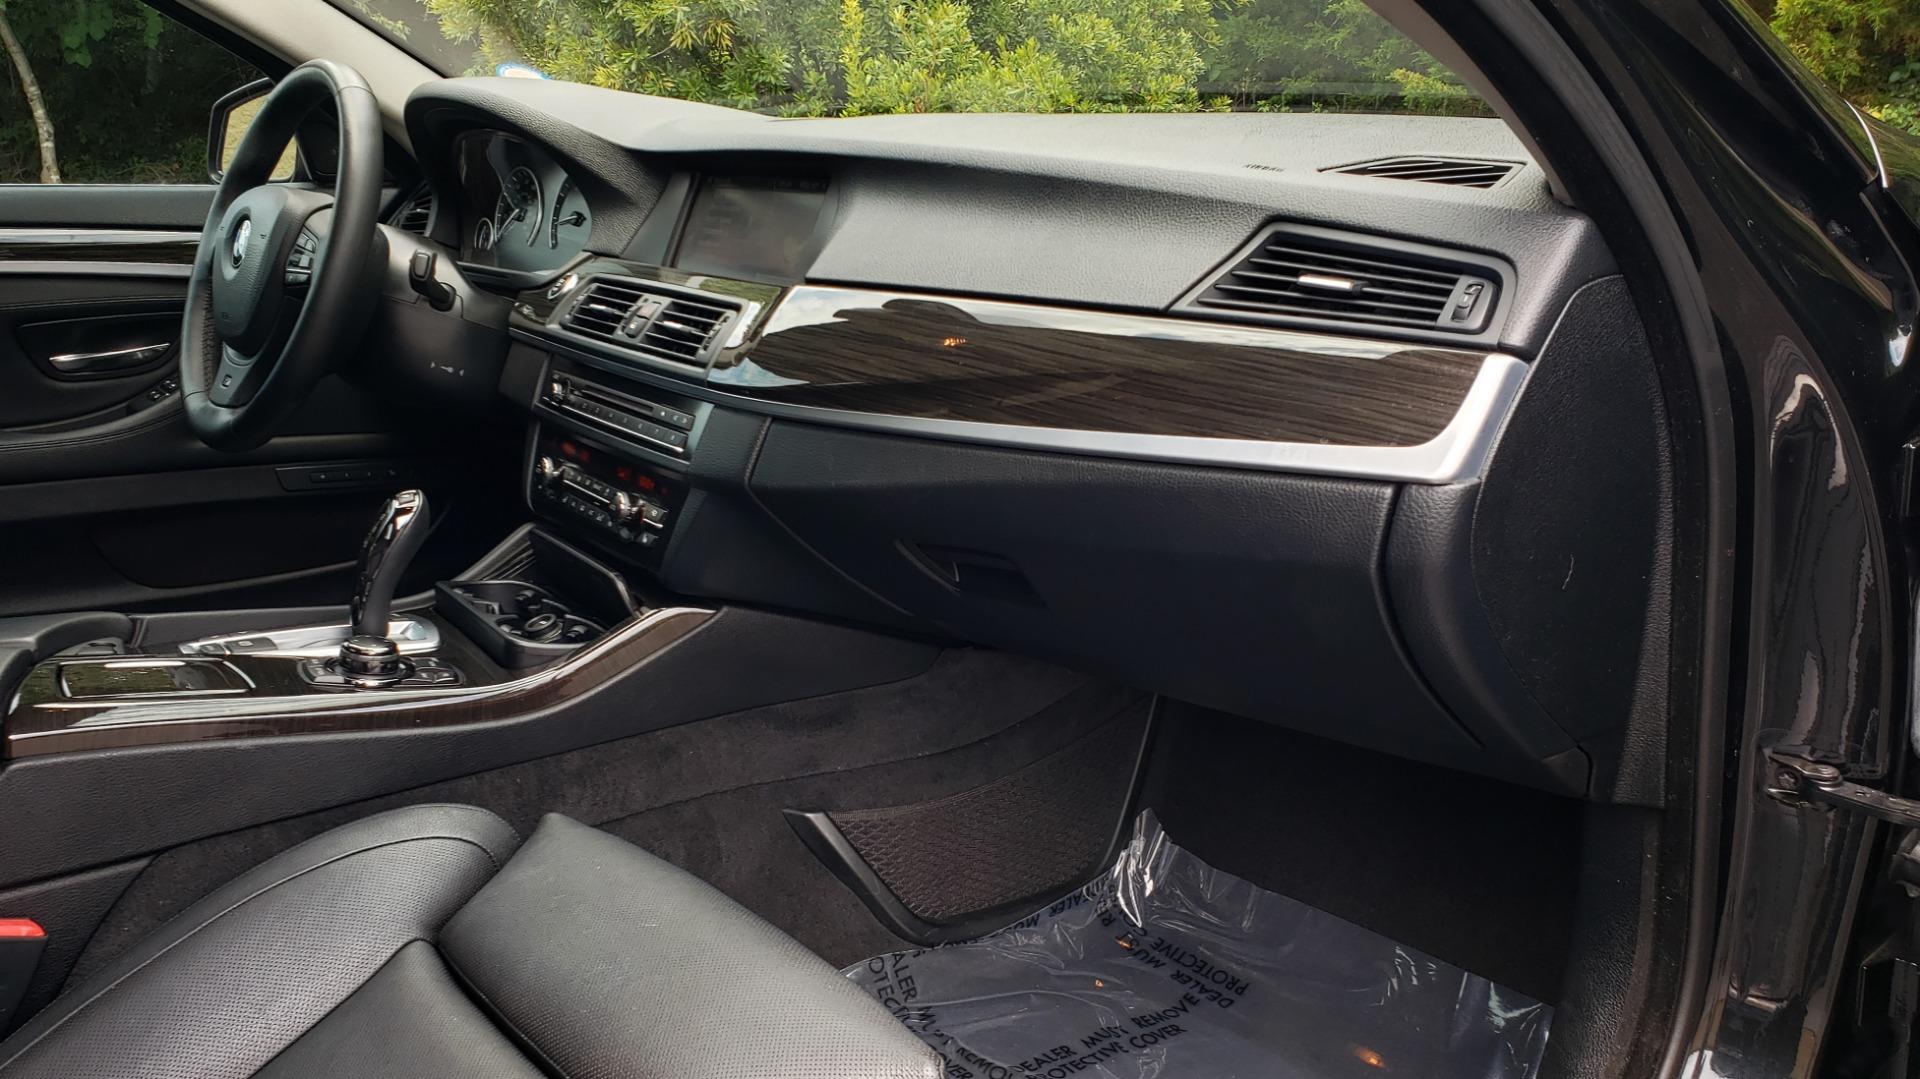 Used 2013 BMW 5 SERIES 550I XDRIVE LUX PKG / EXEC / COLD WTHR / NAV / SUNROOF / REARVIEW for sale $17,995 at Formula Imports in Charlotte NC 28227 61